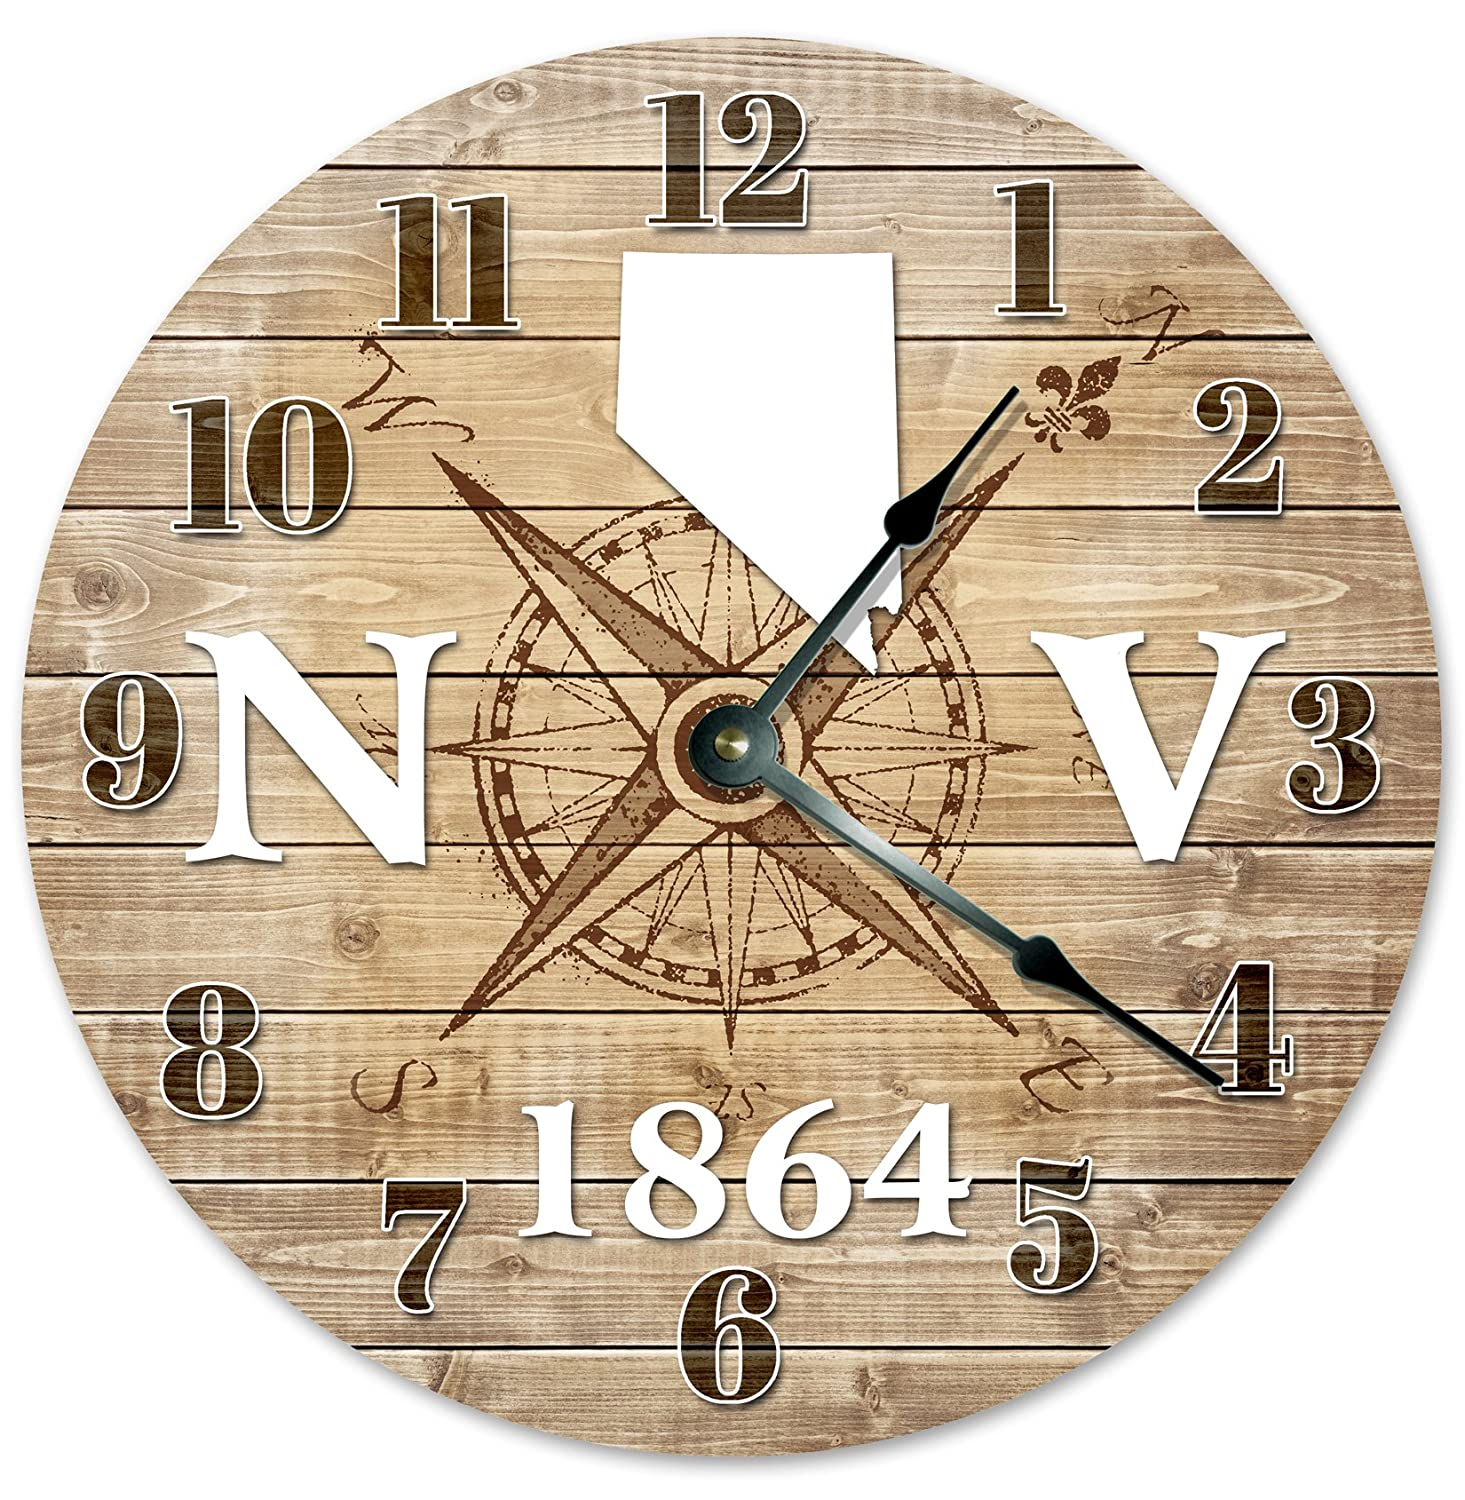 """NEVADA CLOCK Established in 1864 Decorative Round Wall Clock Home Decor Large 10.5"""" COMPASS MAP RUSTIC STATE CLOCK Printed Wood Image"""